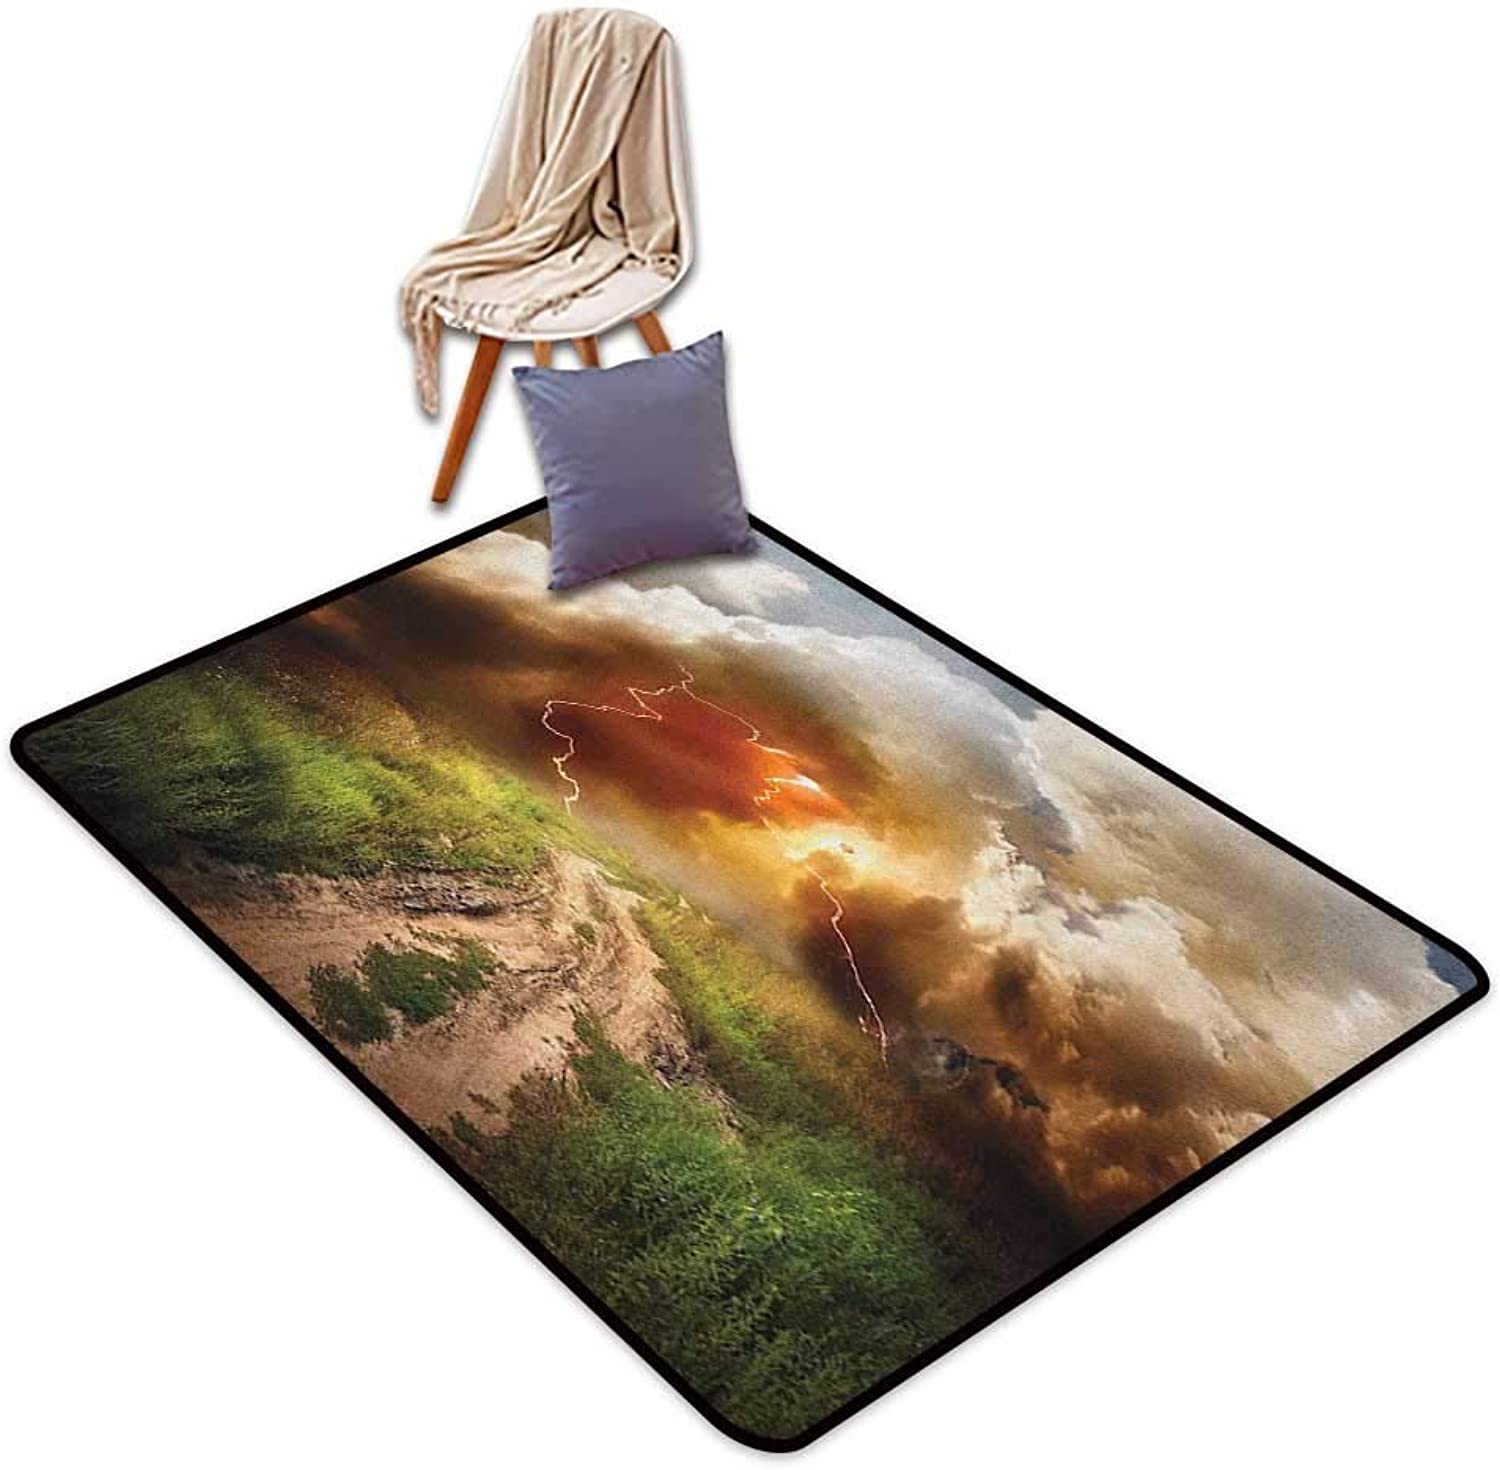 Door Rug Area Rug Nature Dazzling Big Rain Cloud Over Earth Path Road Countryside Field Climate Energy Image Door Rug Increase W5'xL6'